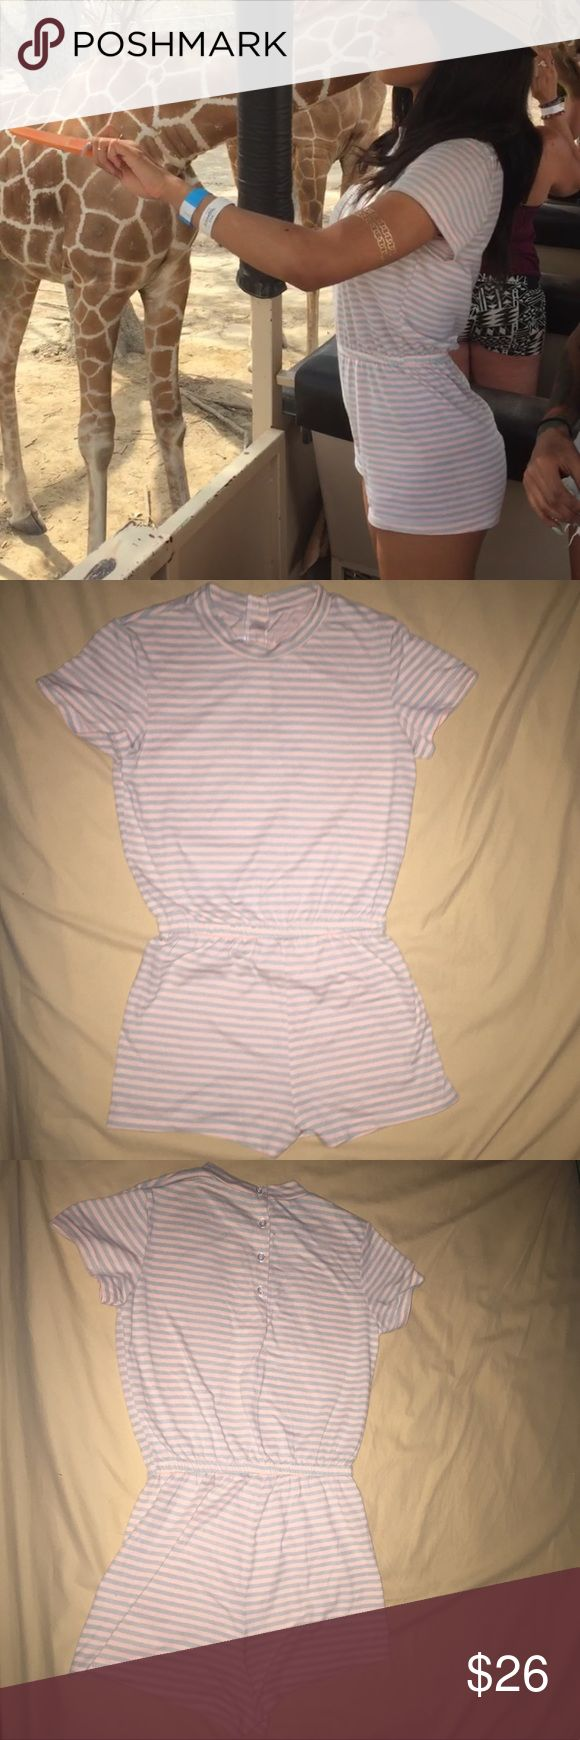 American Apparel T-Shirt Romper Striped, lightweight romper. Worn once. Perfect condition. American Apparel Shorts